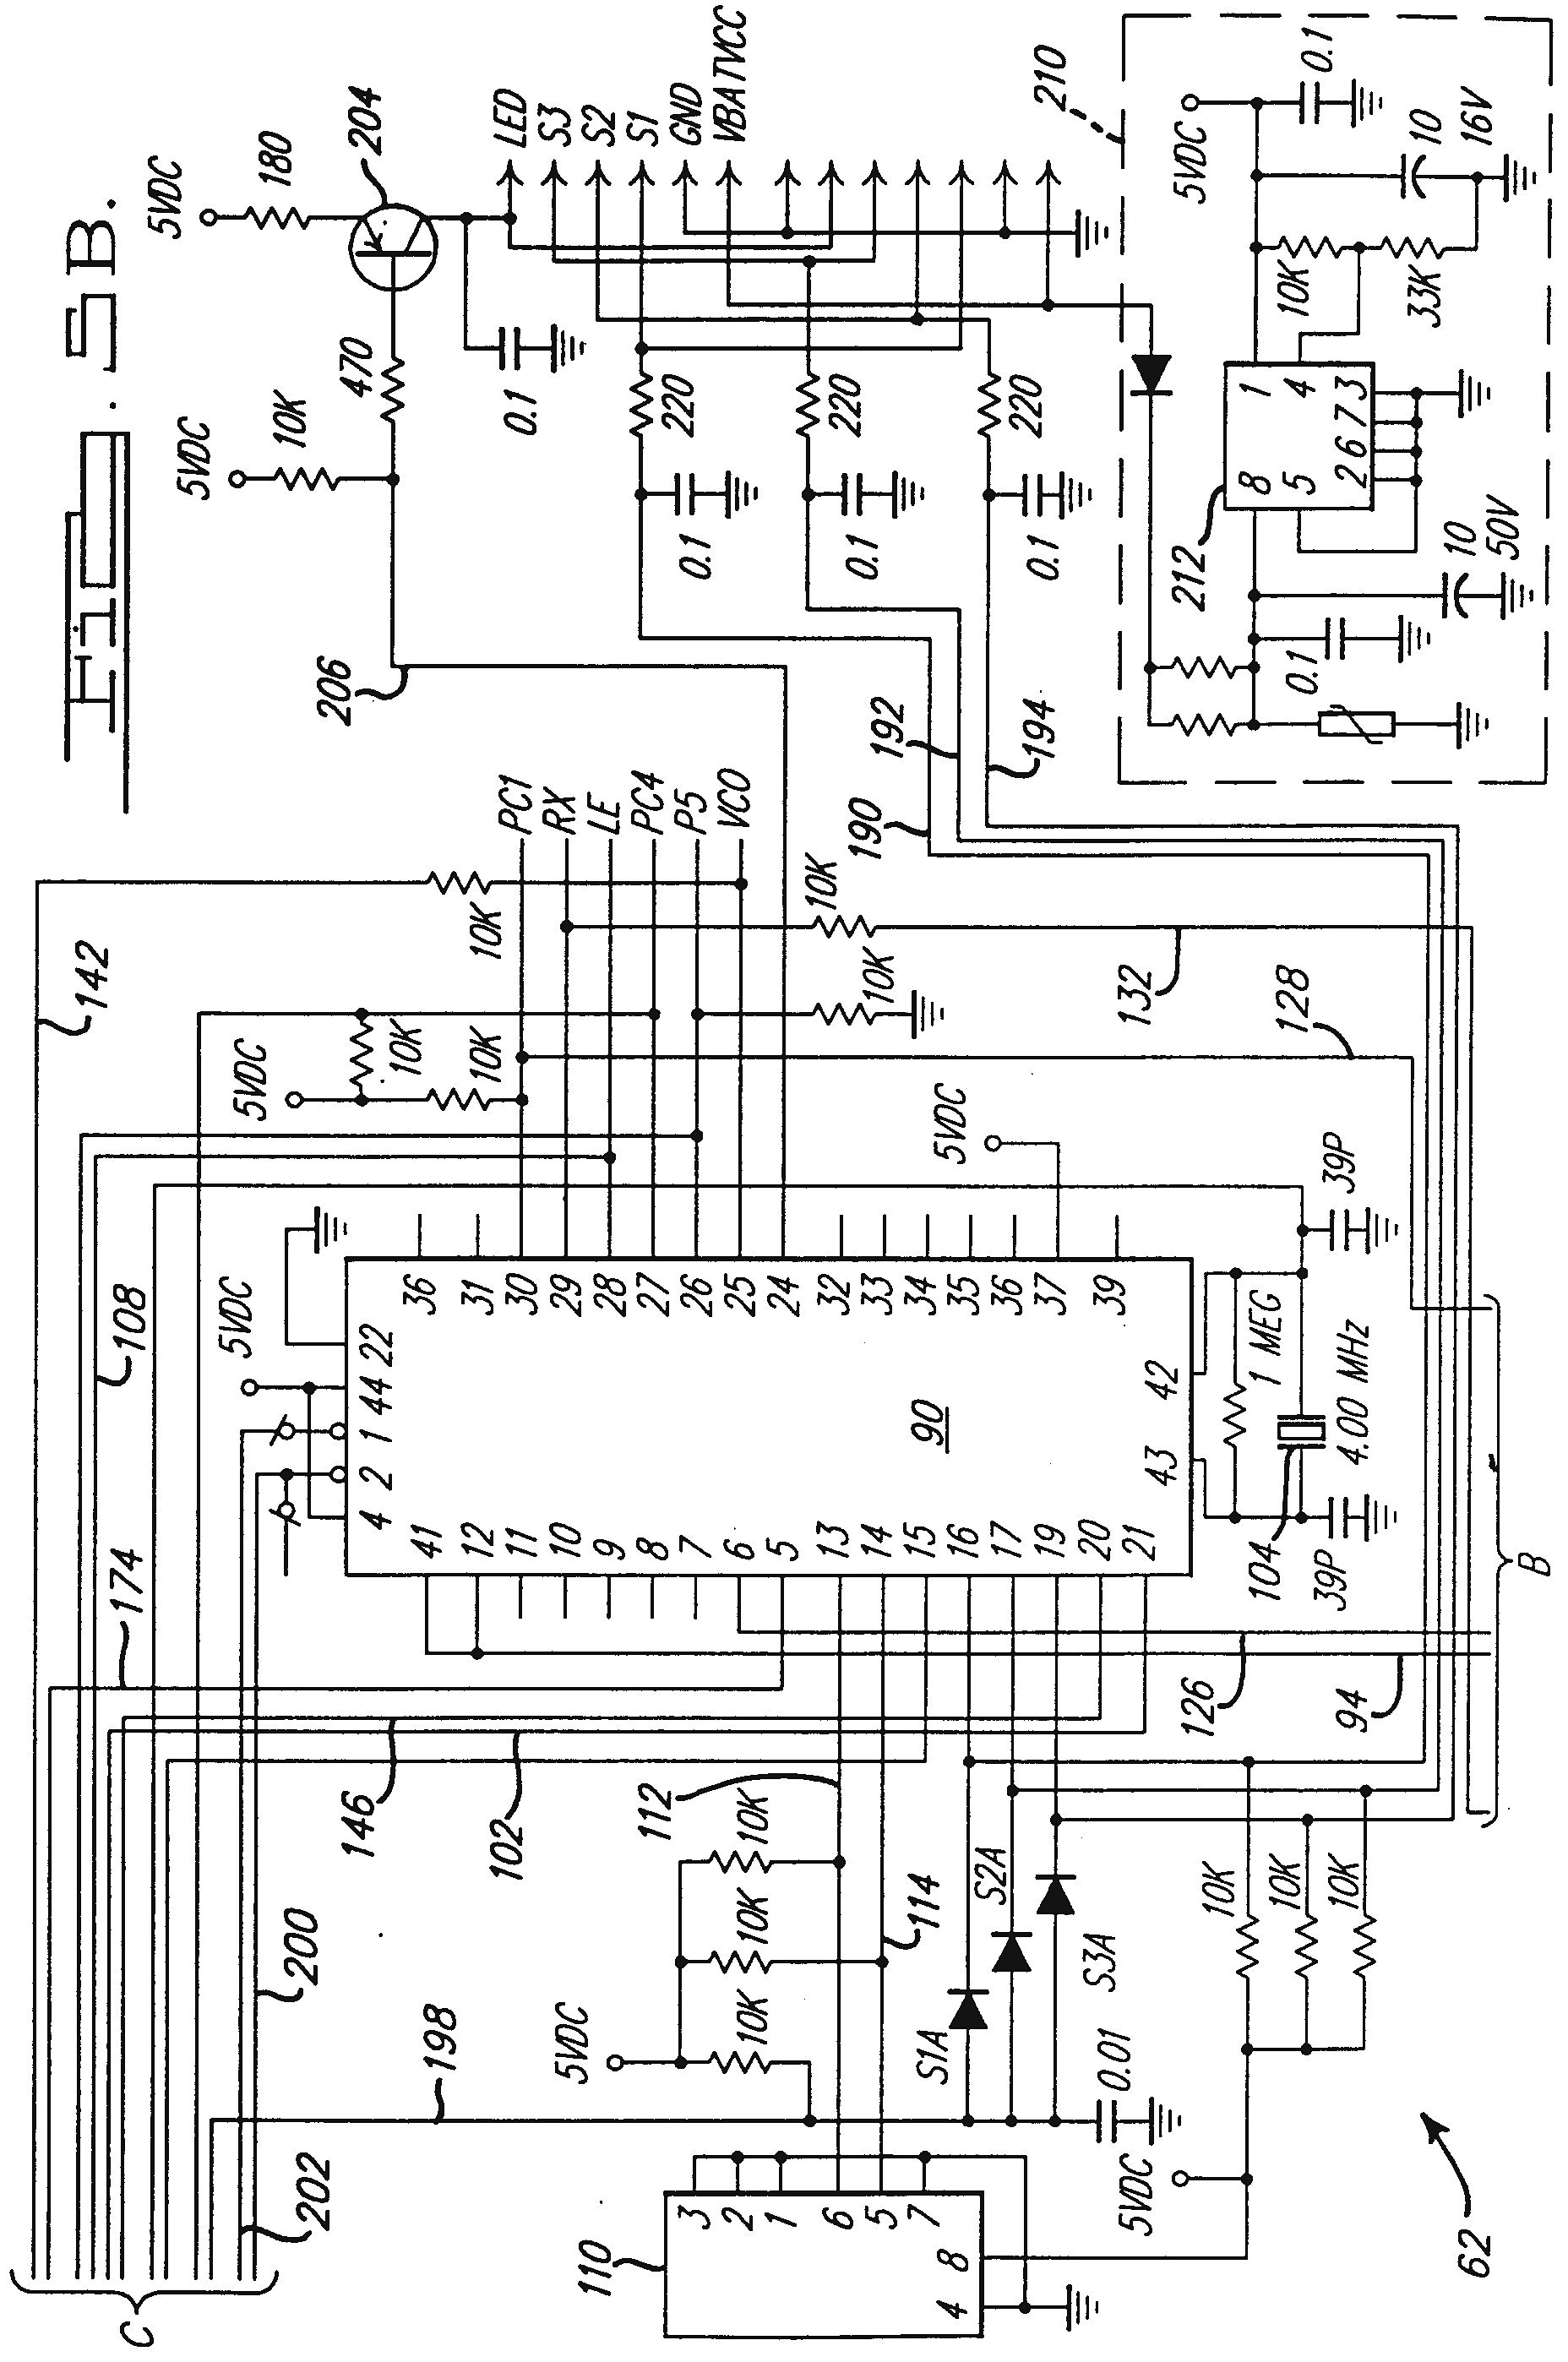 genie garage door sensor wiring diagram Collection-Garage Wiring Diagram Inspirational Fresh Genie Door Opener 9-g